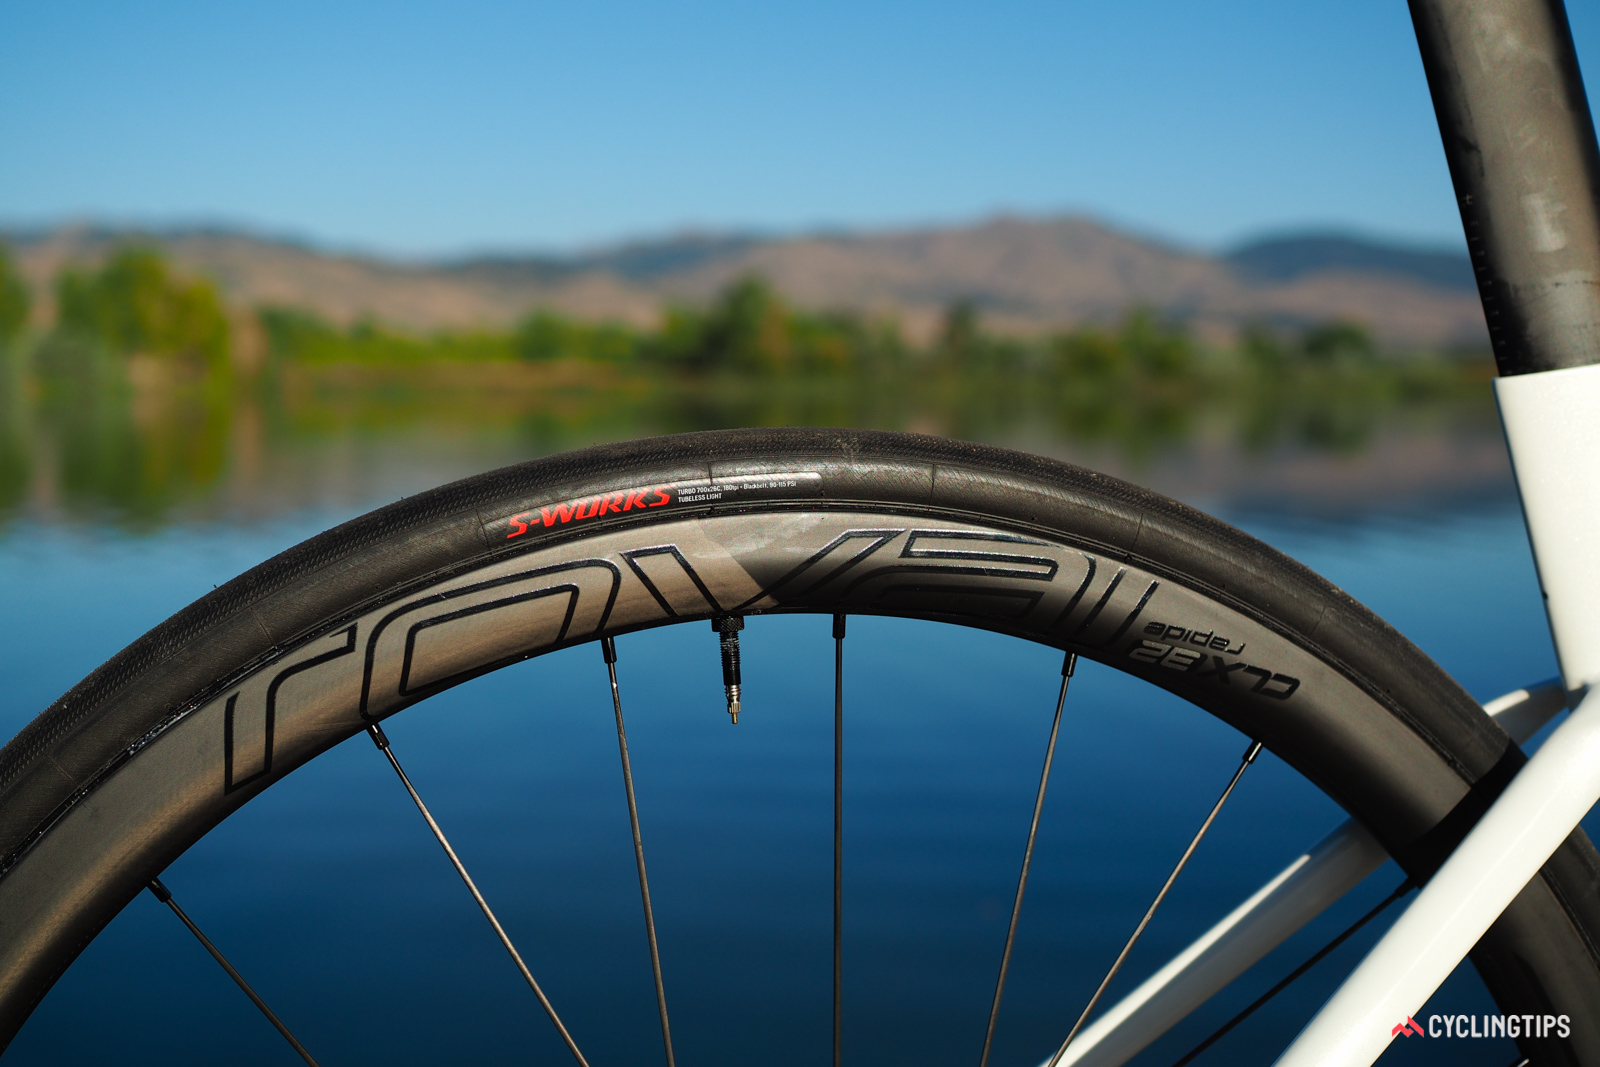 If nothing else, disc brakes wholly eliminate heat-related issues on carbon clincher rims as compared to rim brakes.